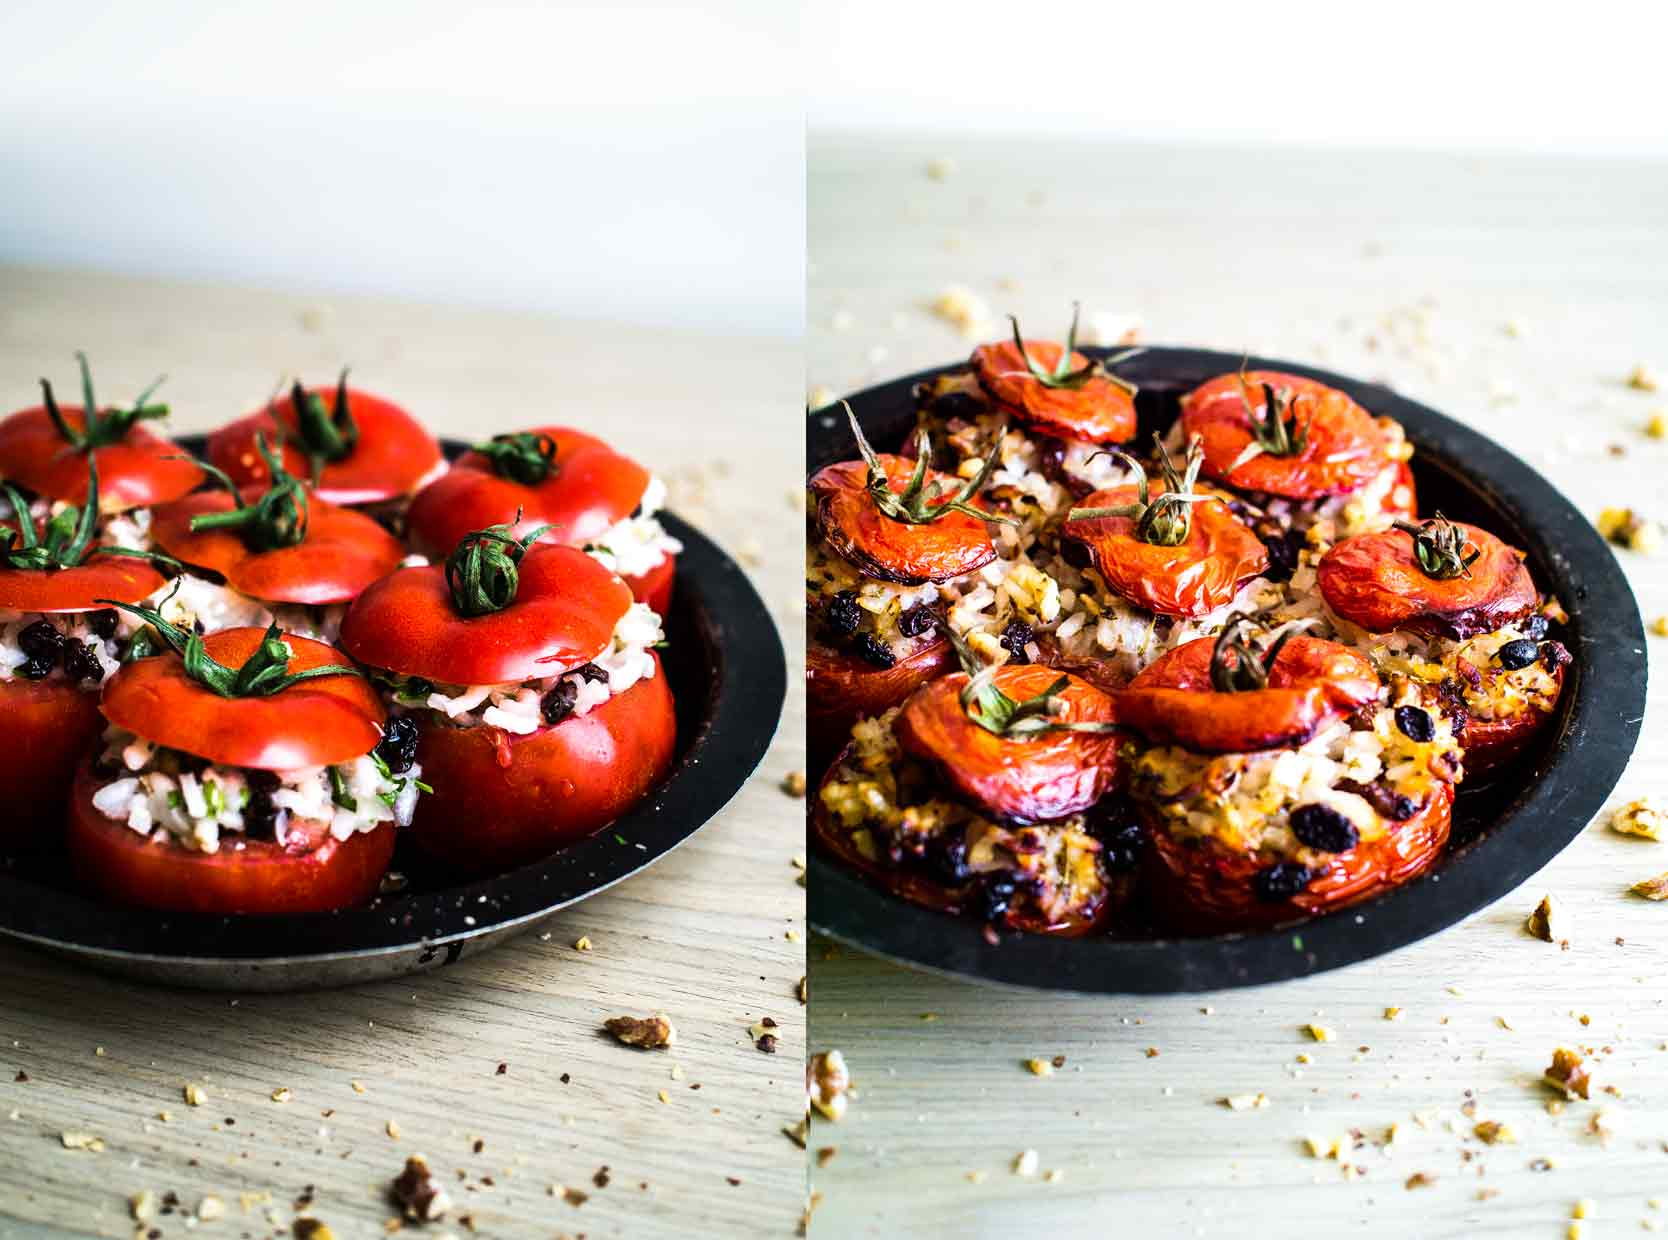 Stuffed Tomatoes from Israeli Stuffed Tomatoes and Courgettes   Vegan Recipe   Discover Delicious   www.discoverdelicious.org